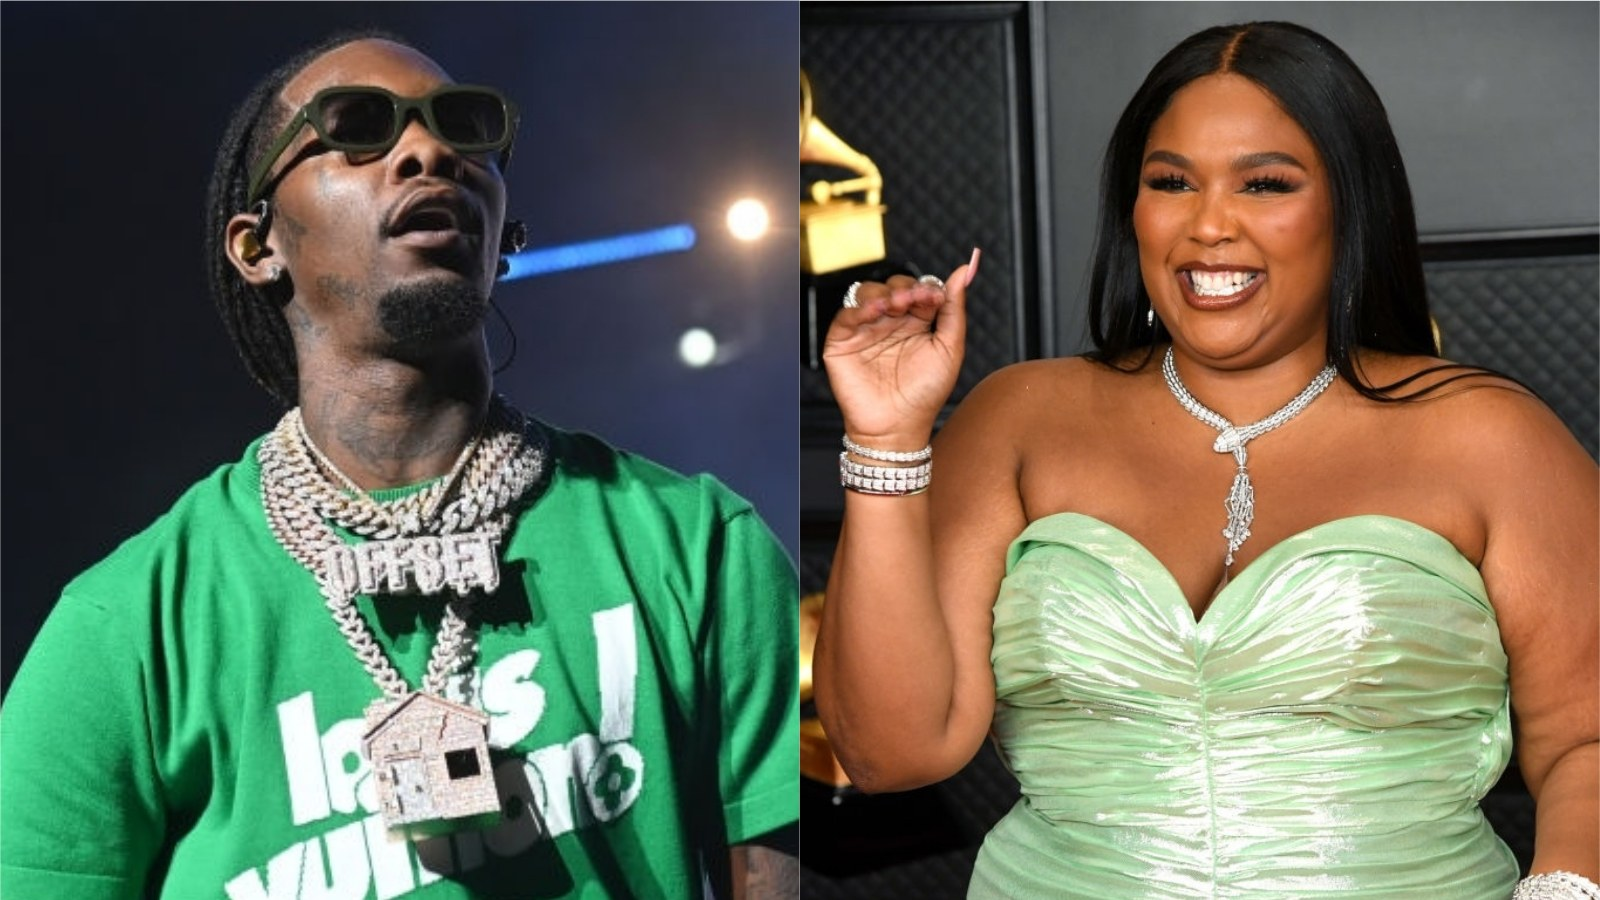 Offset Comes To Lizzo's Defense After Singer Bullied Online: 'Let These Black Women Be Great'